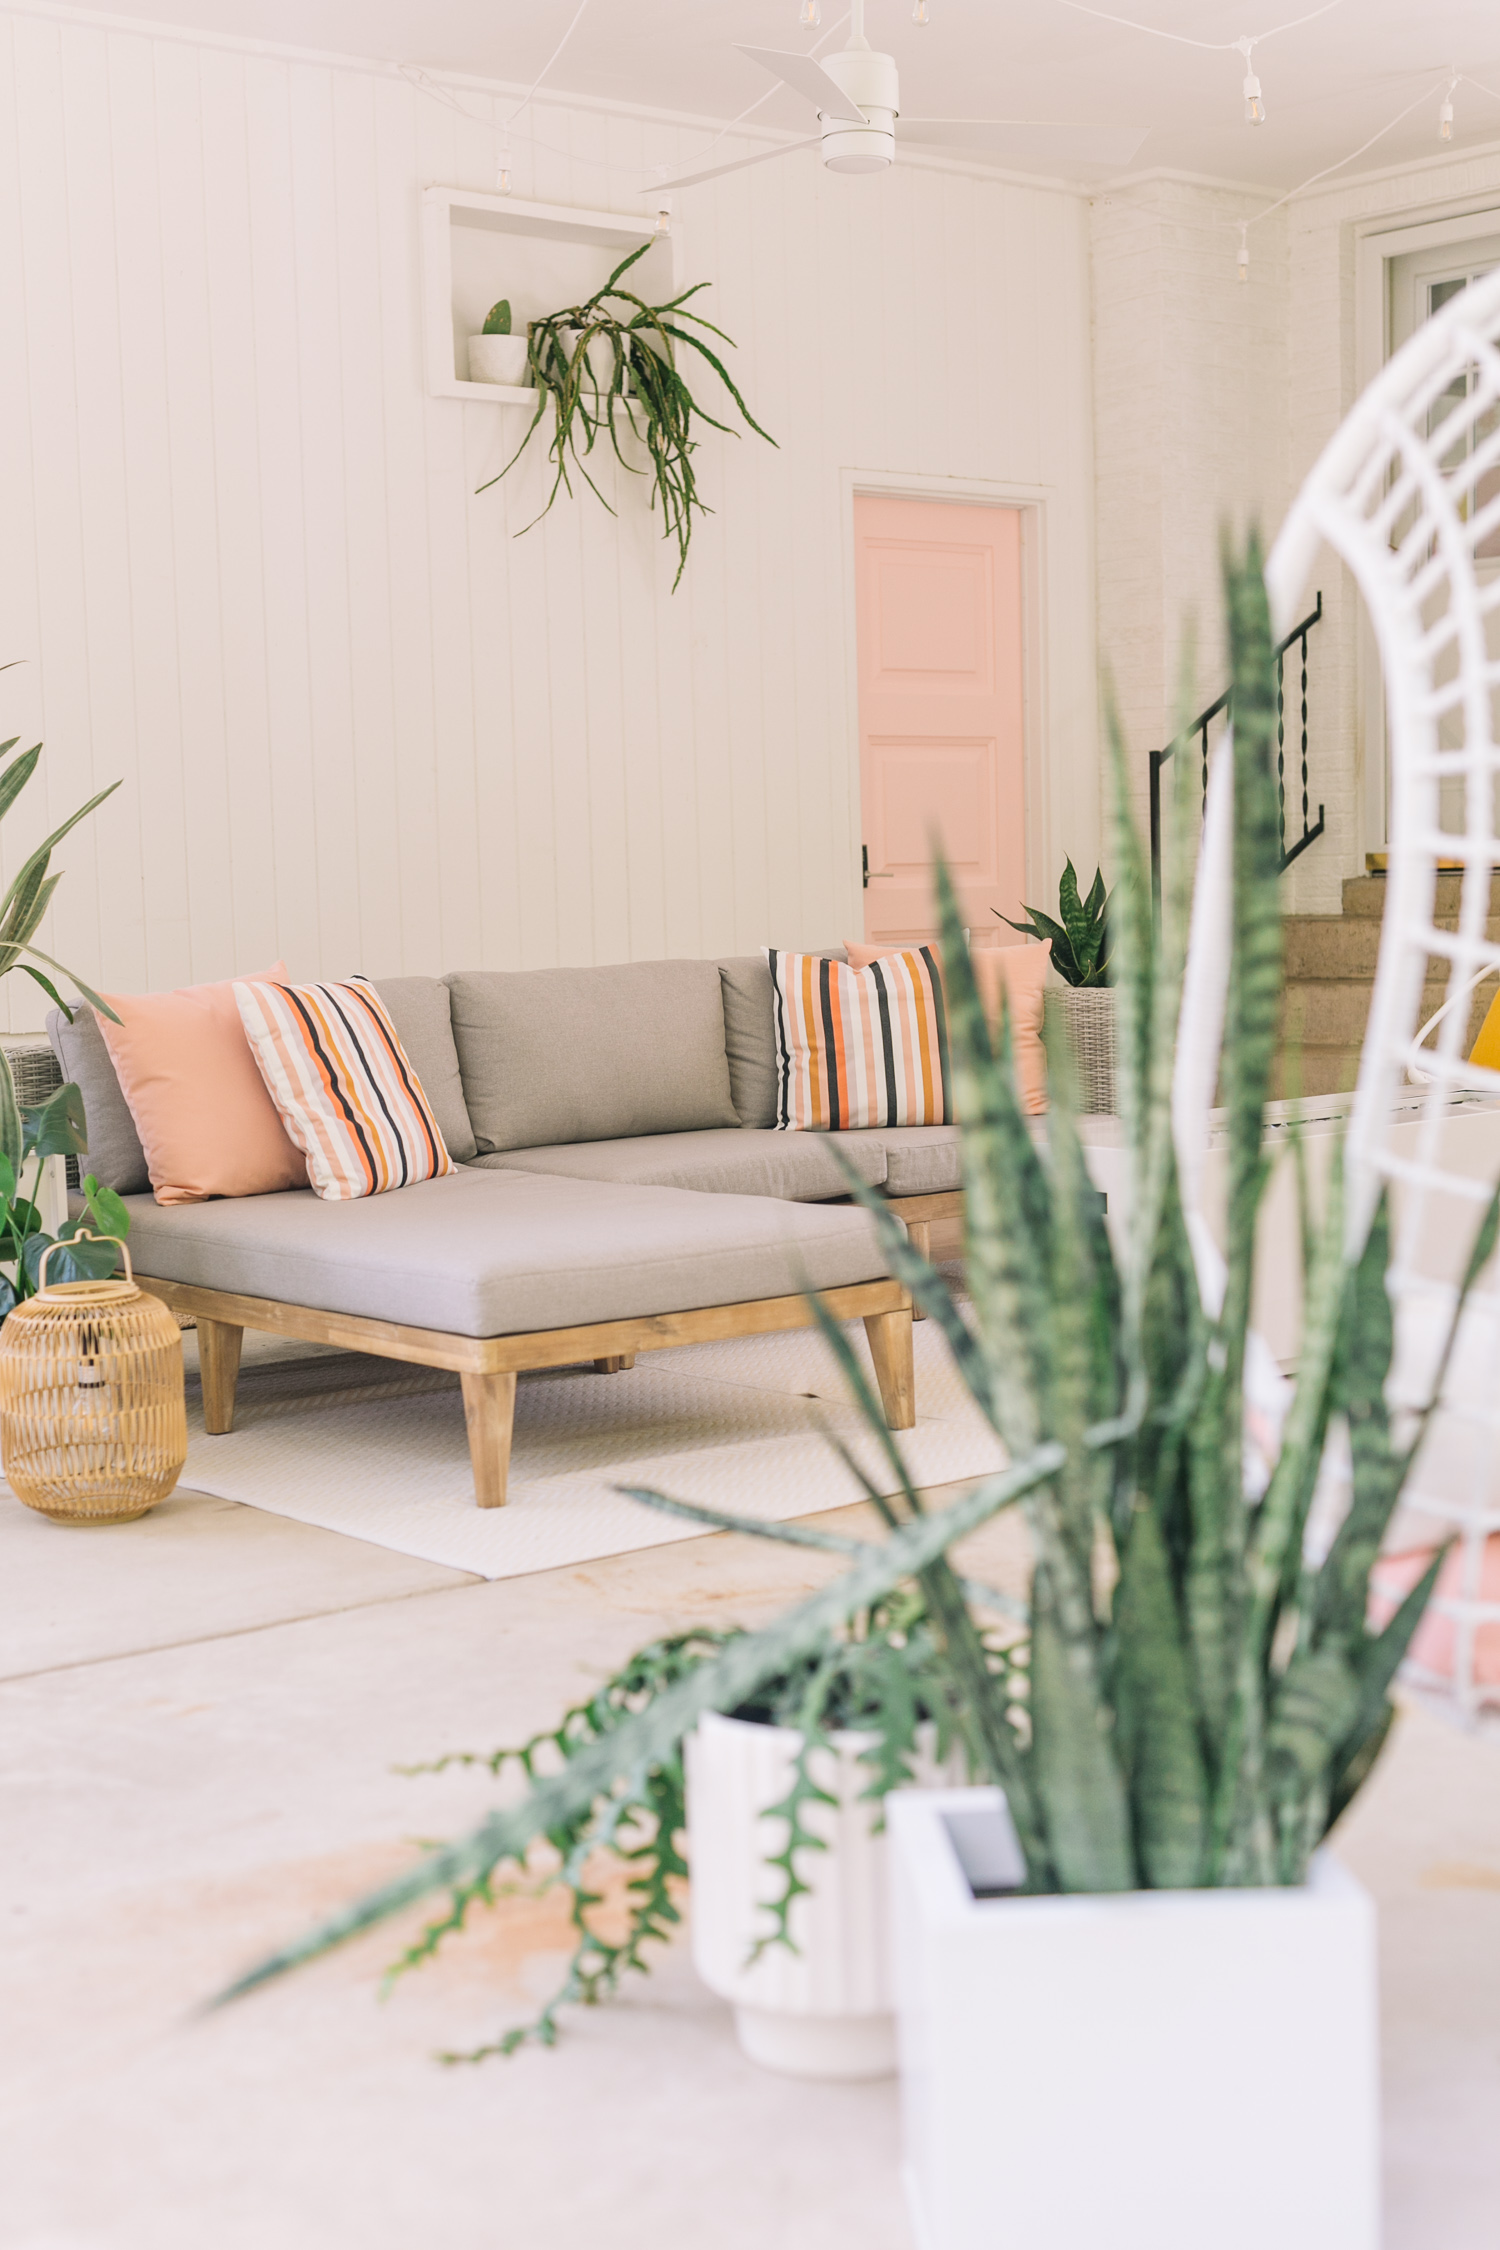 How To Protect Your Outdoor Furniture Through All Seasons